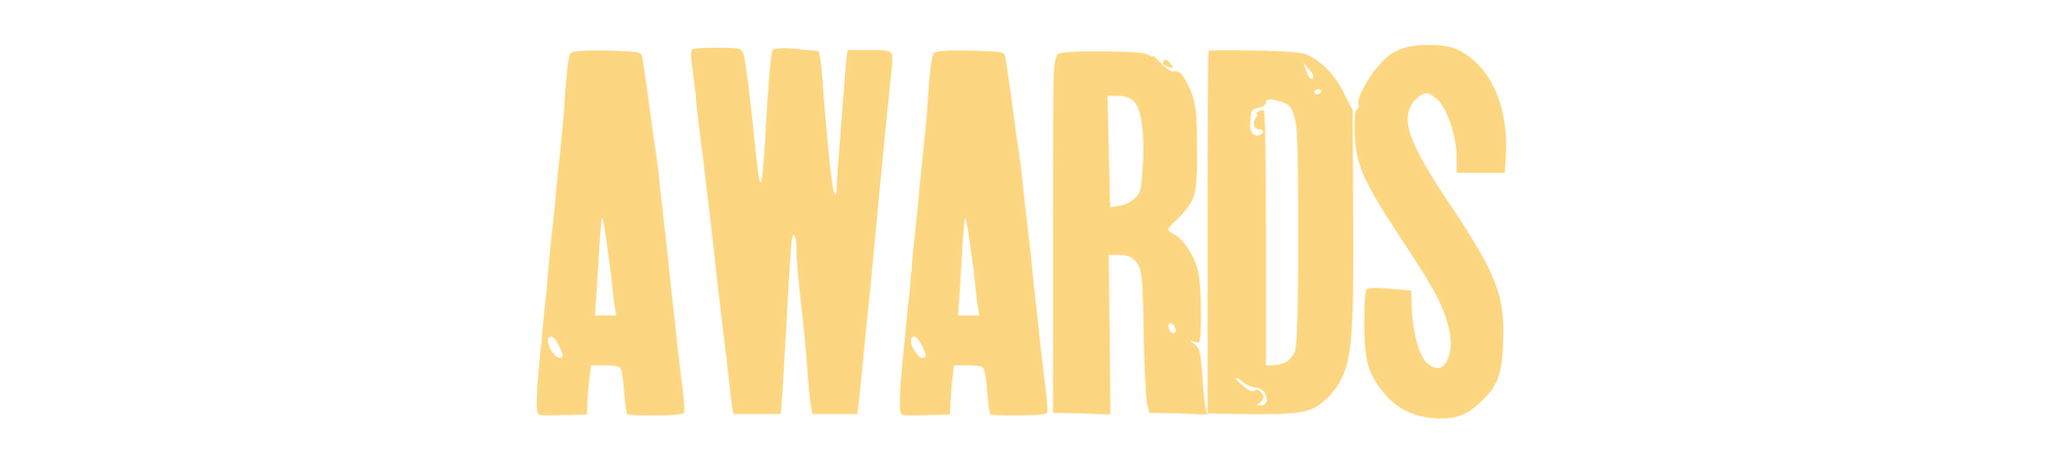 AWARDS_OPAQUE.png